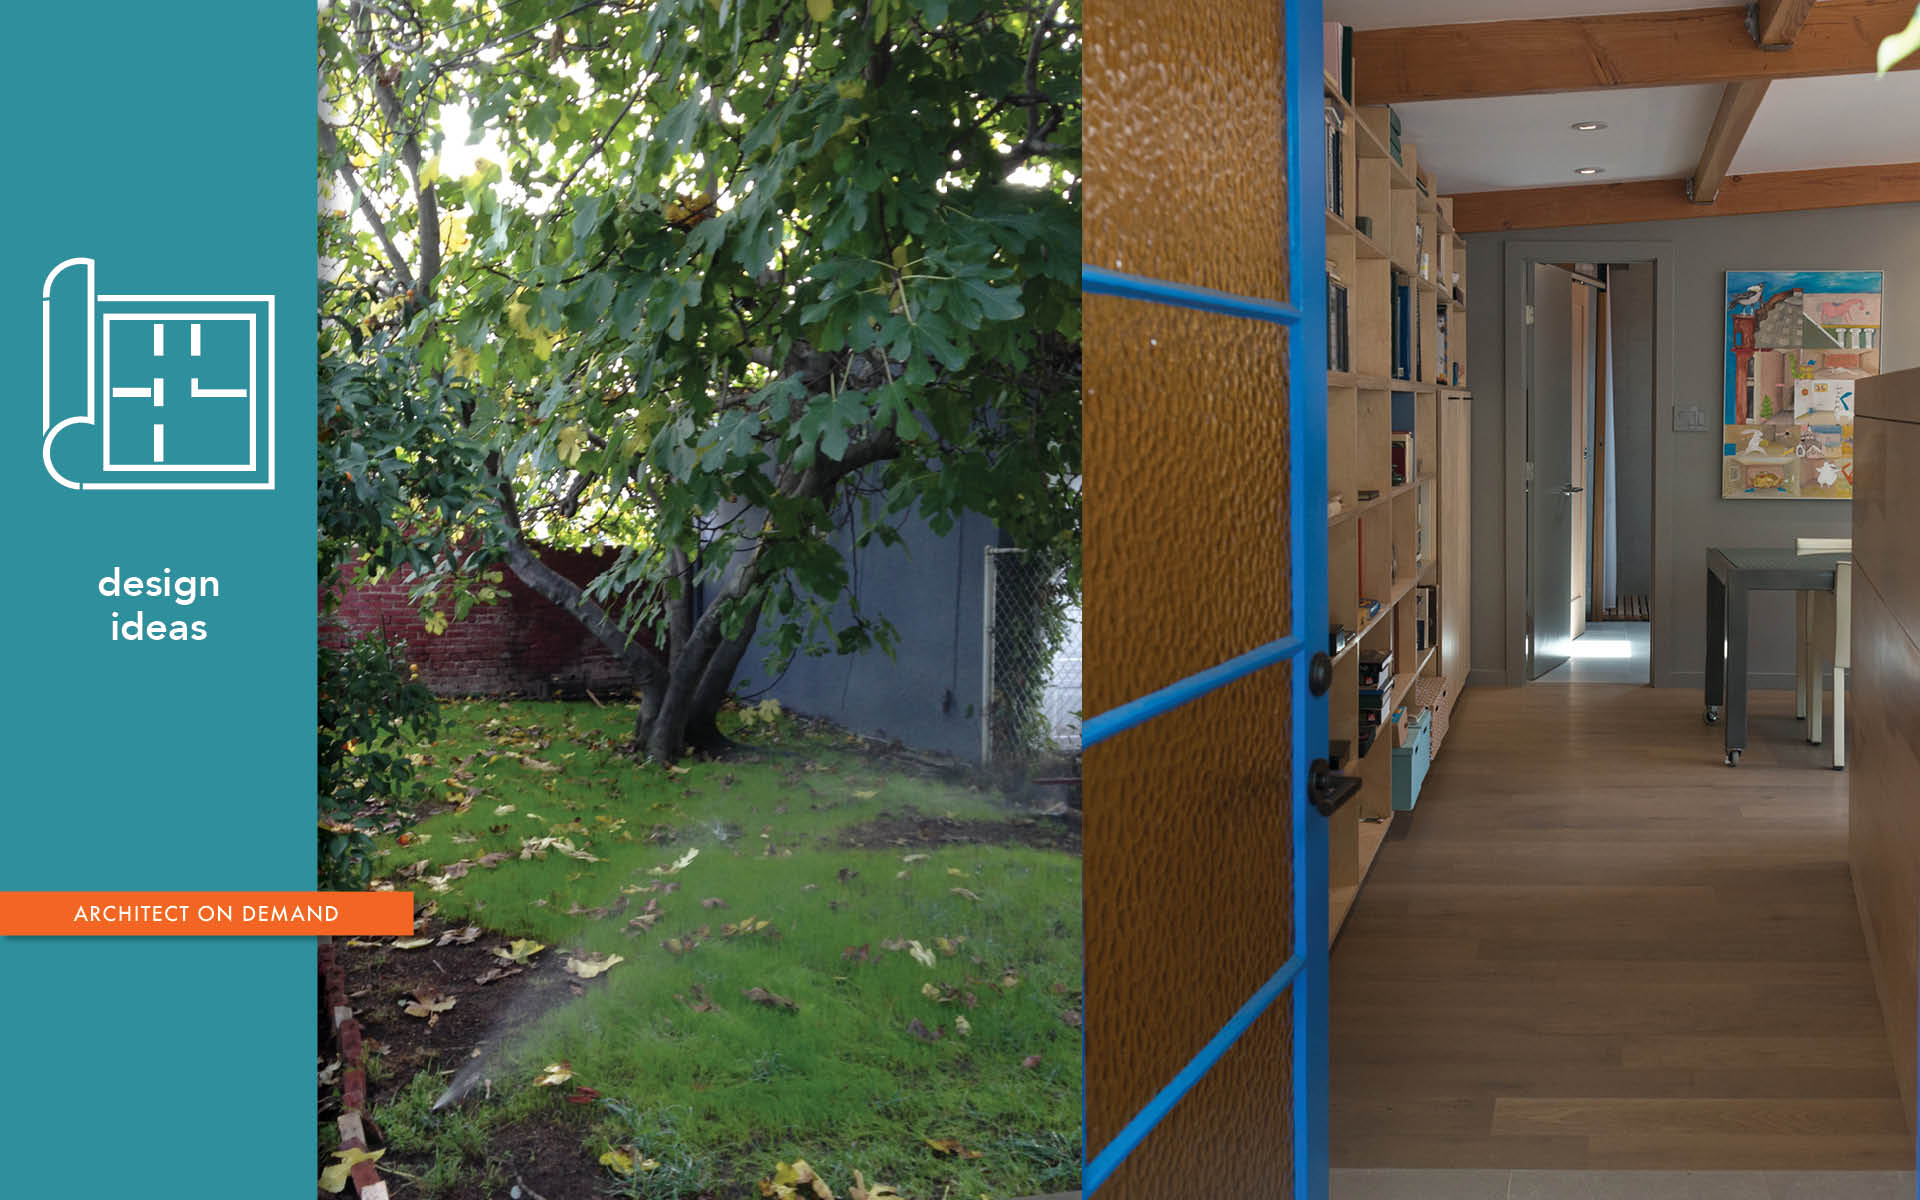 transformation, shed, 3-car garagearchitect on demand, advice without strings